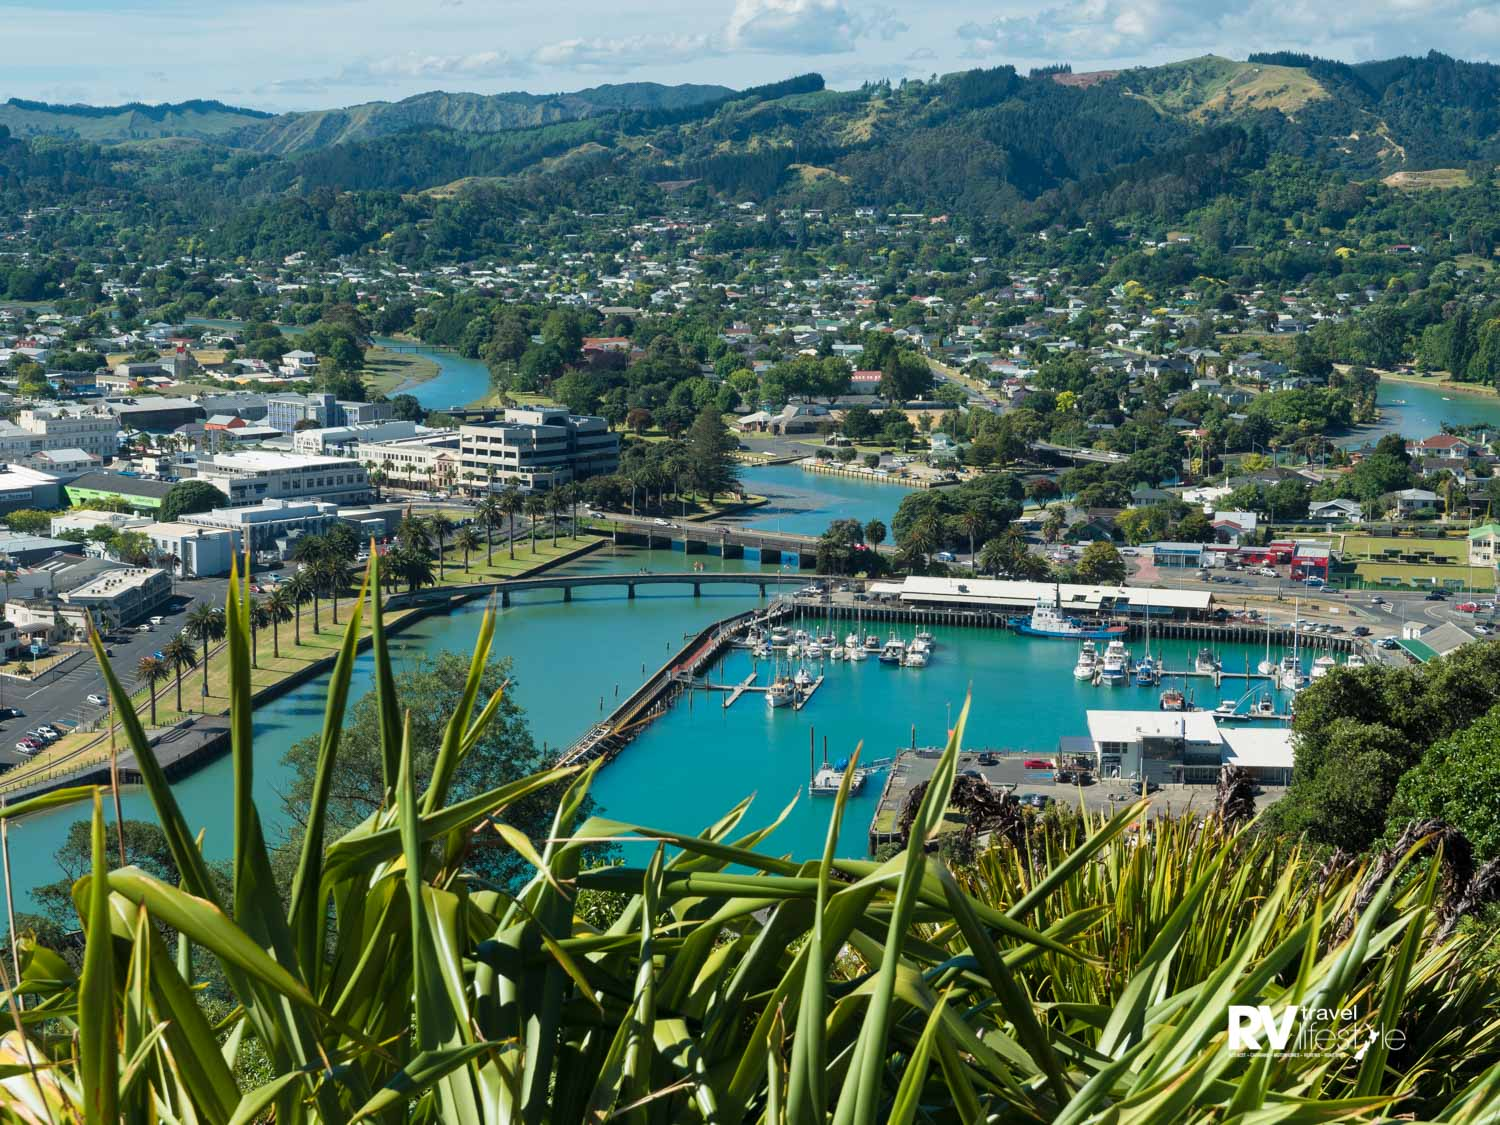 Gisborne from a lookout on Titirangi-Kaiti Hill. Photo by Damon Meade